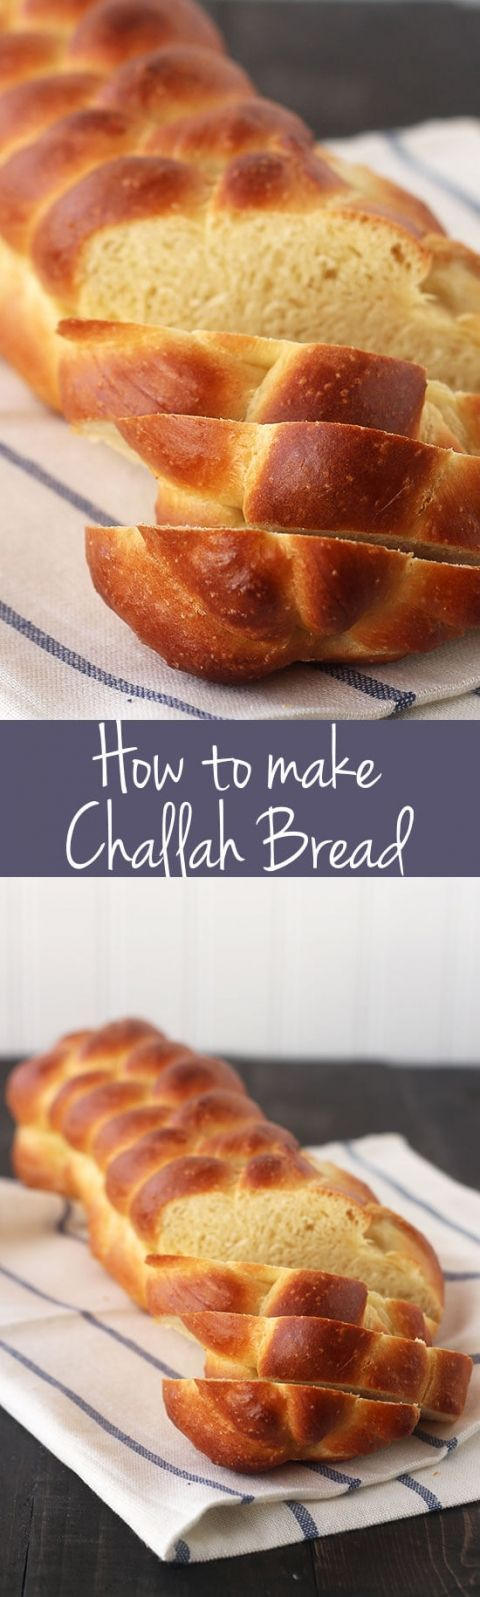 ANYONE can make this beautiful perfect bread! Step-by-step video with simplified techniques. This is the best recipe!